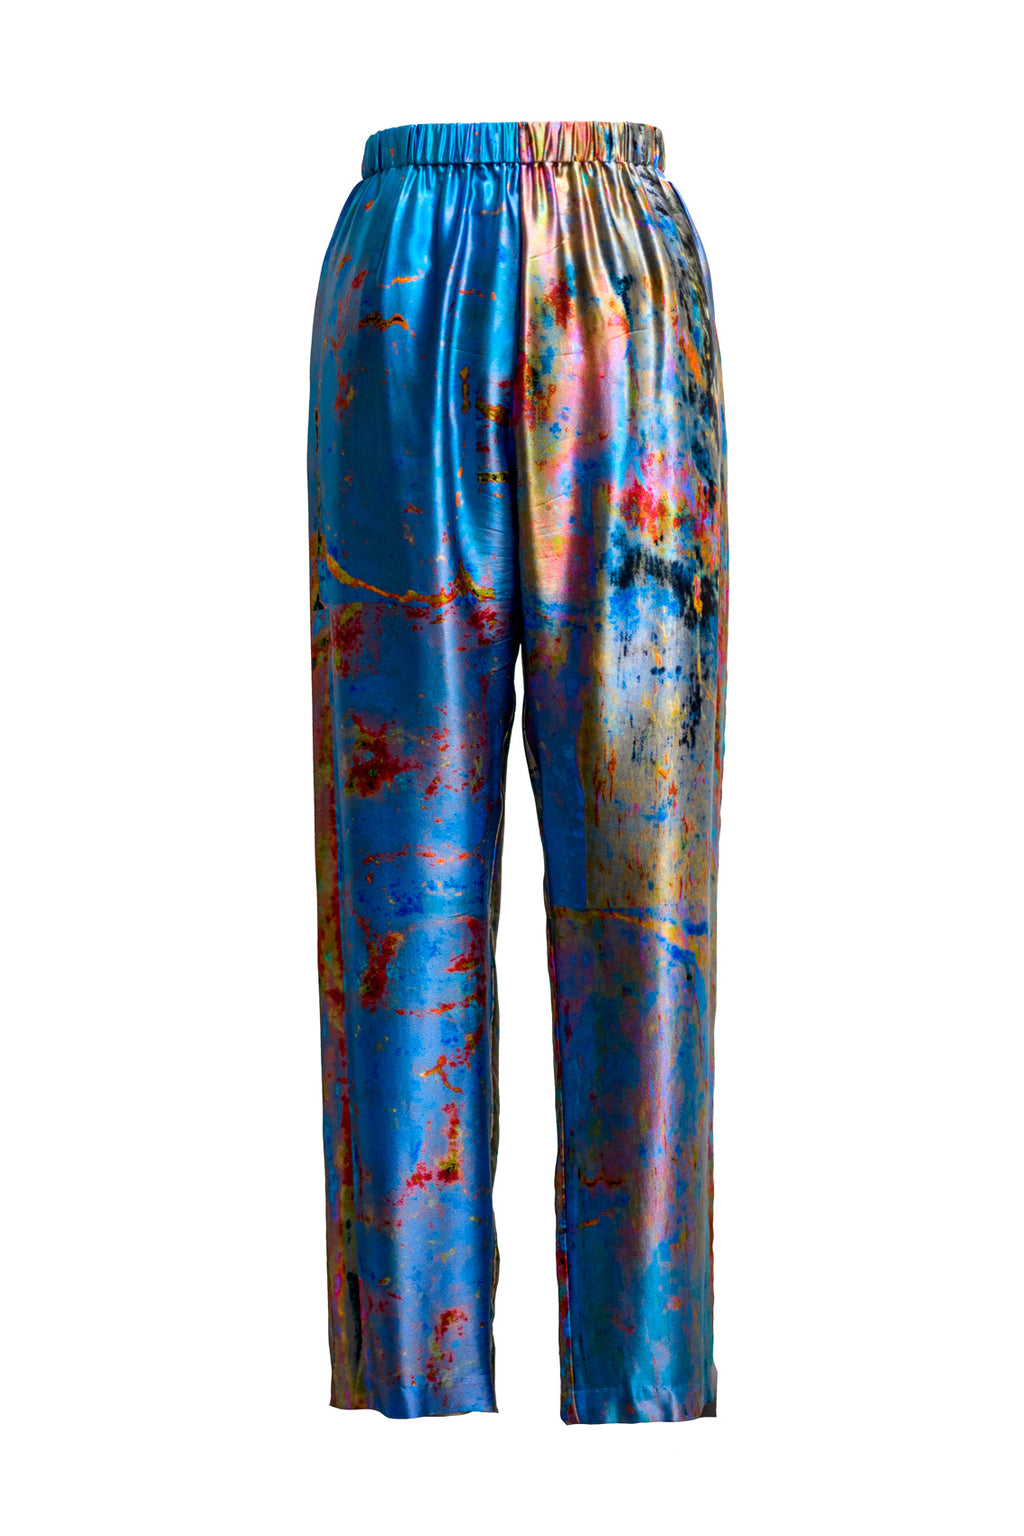 The Faultline Silk Joy Pant